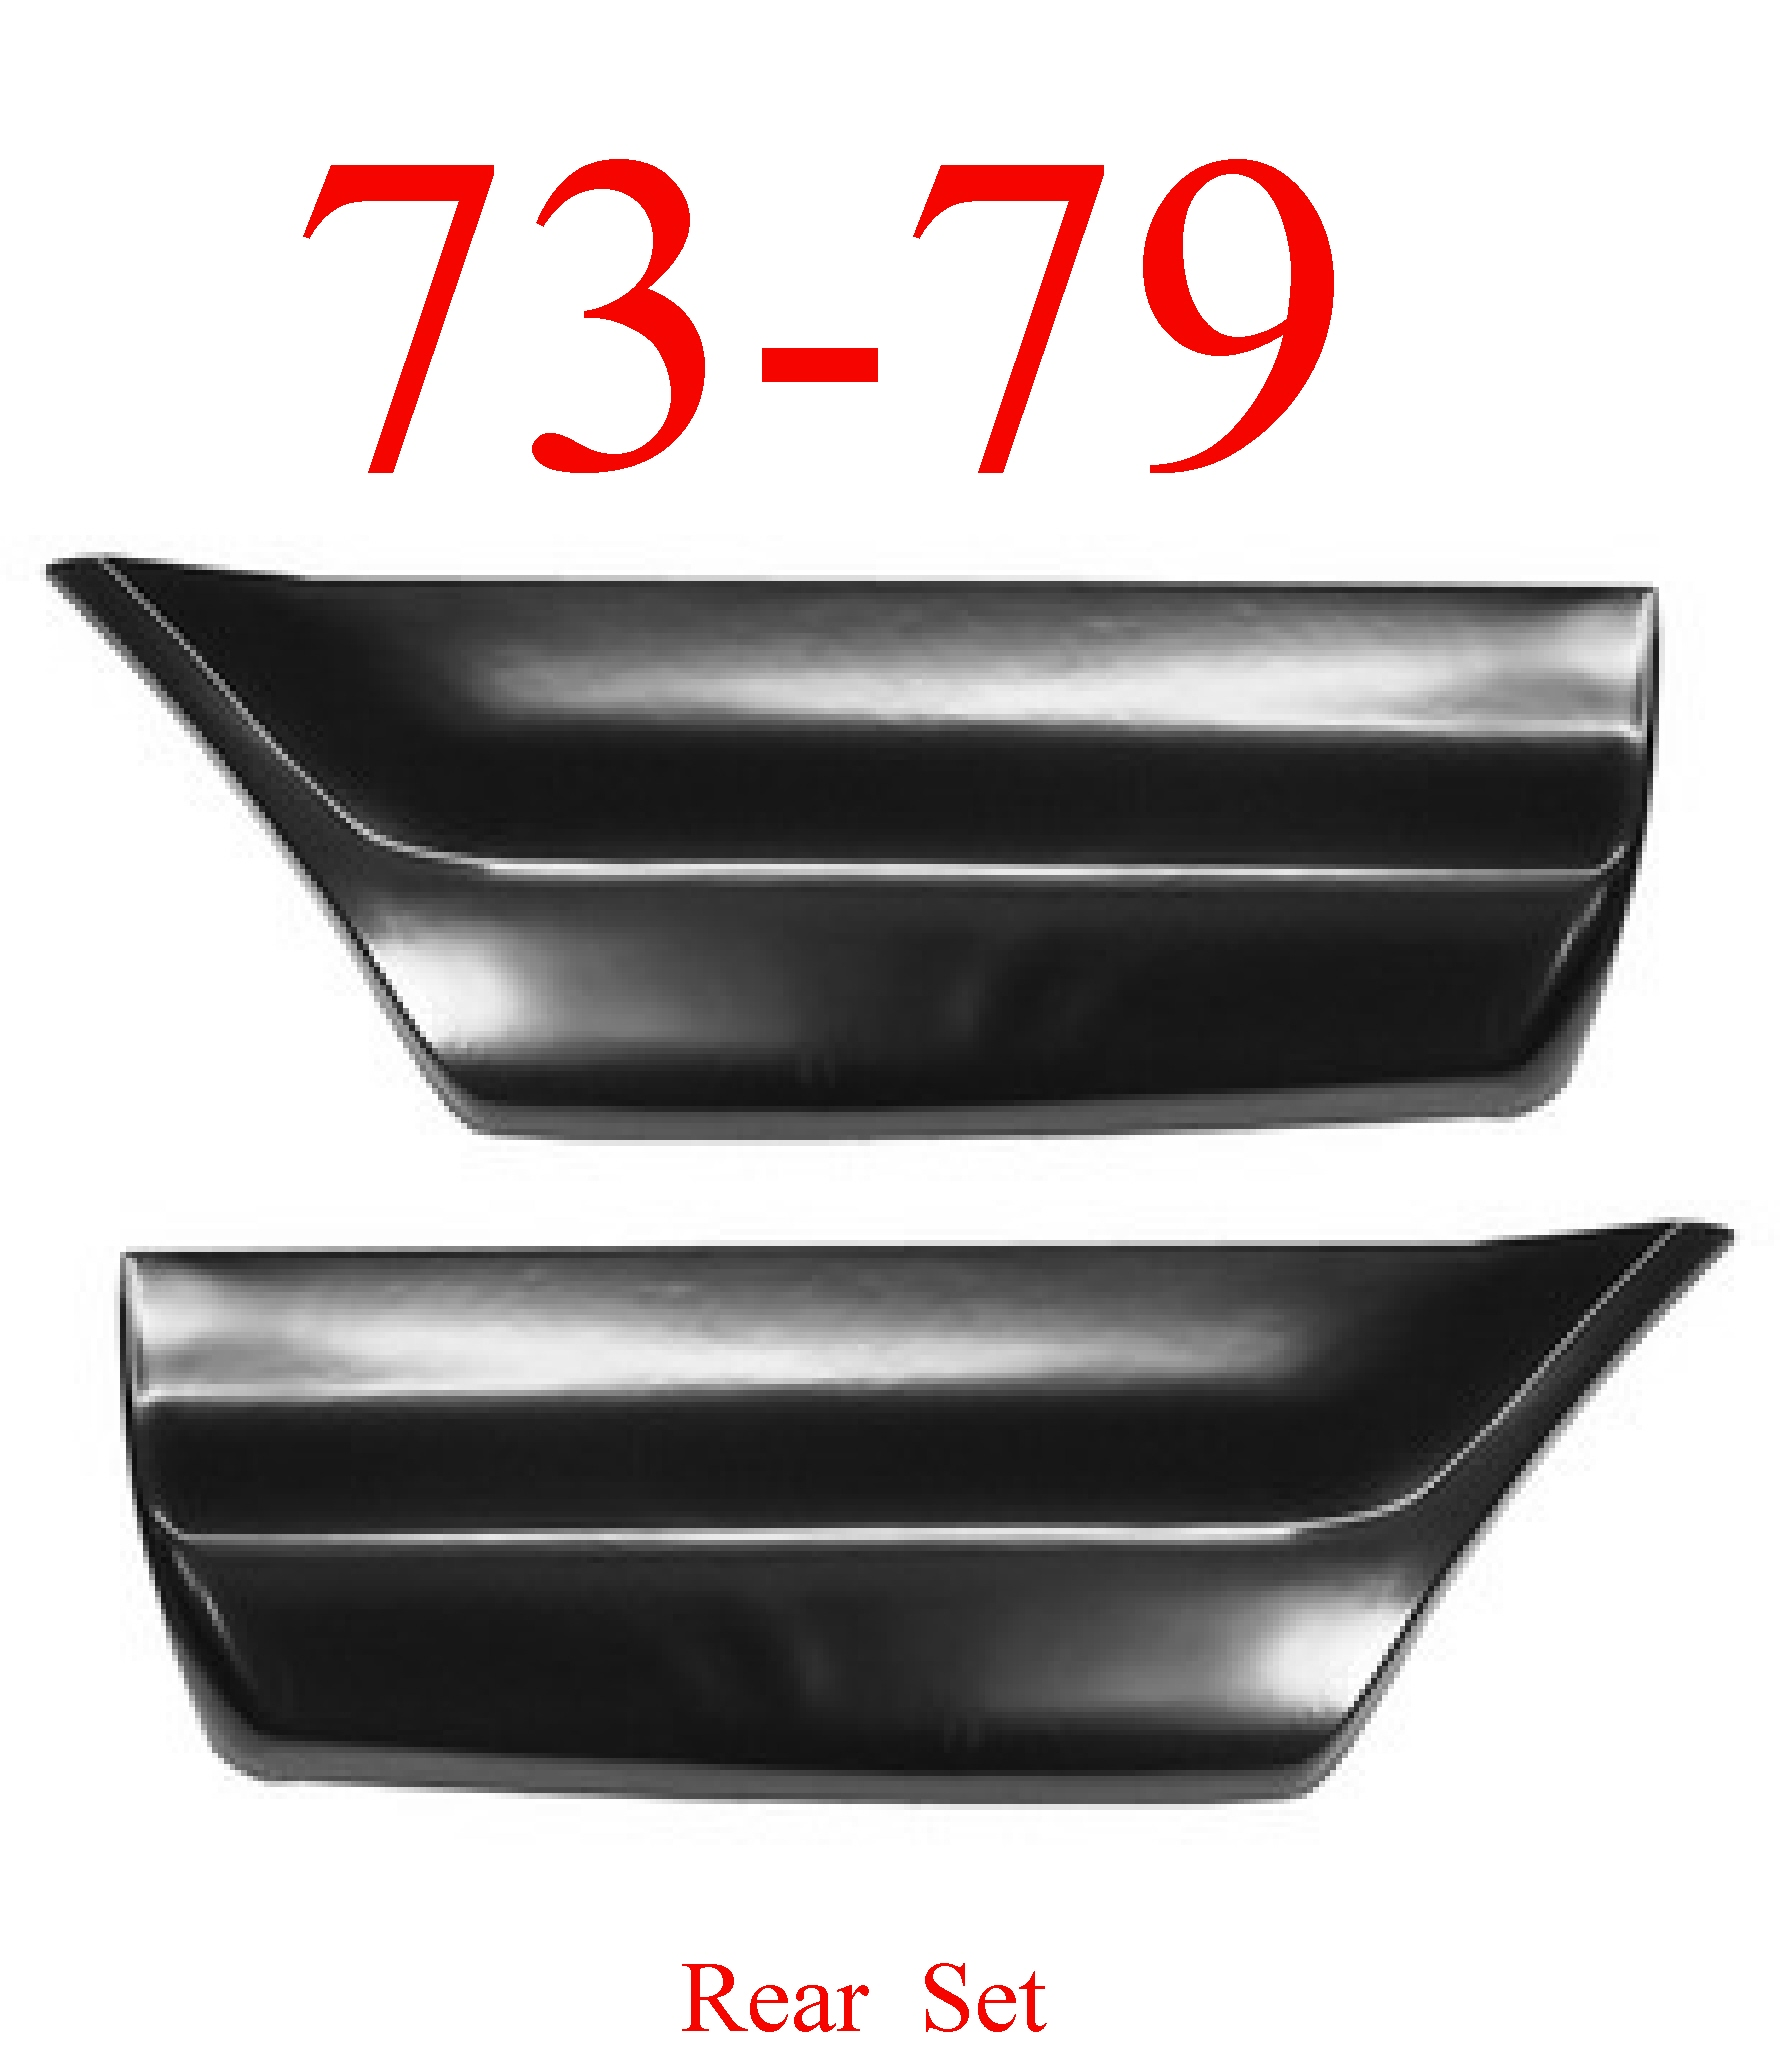 73-79 Ford Rear Lower Bed Patch Set